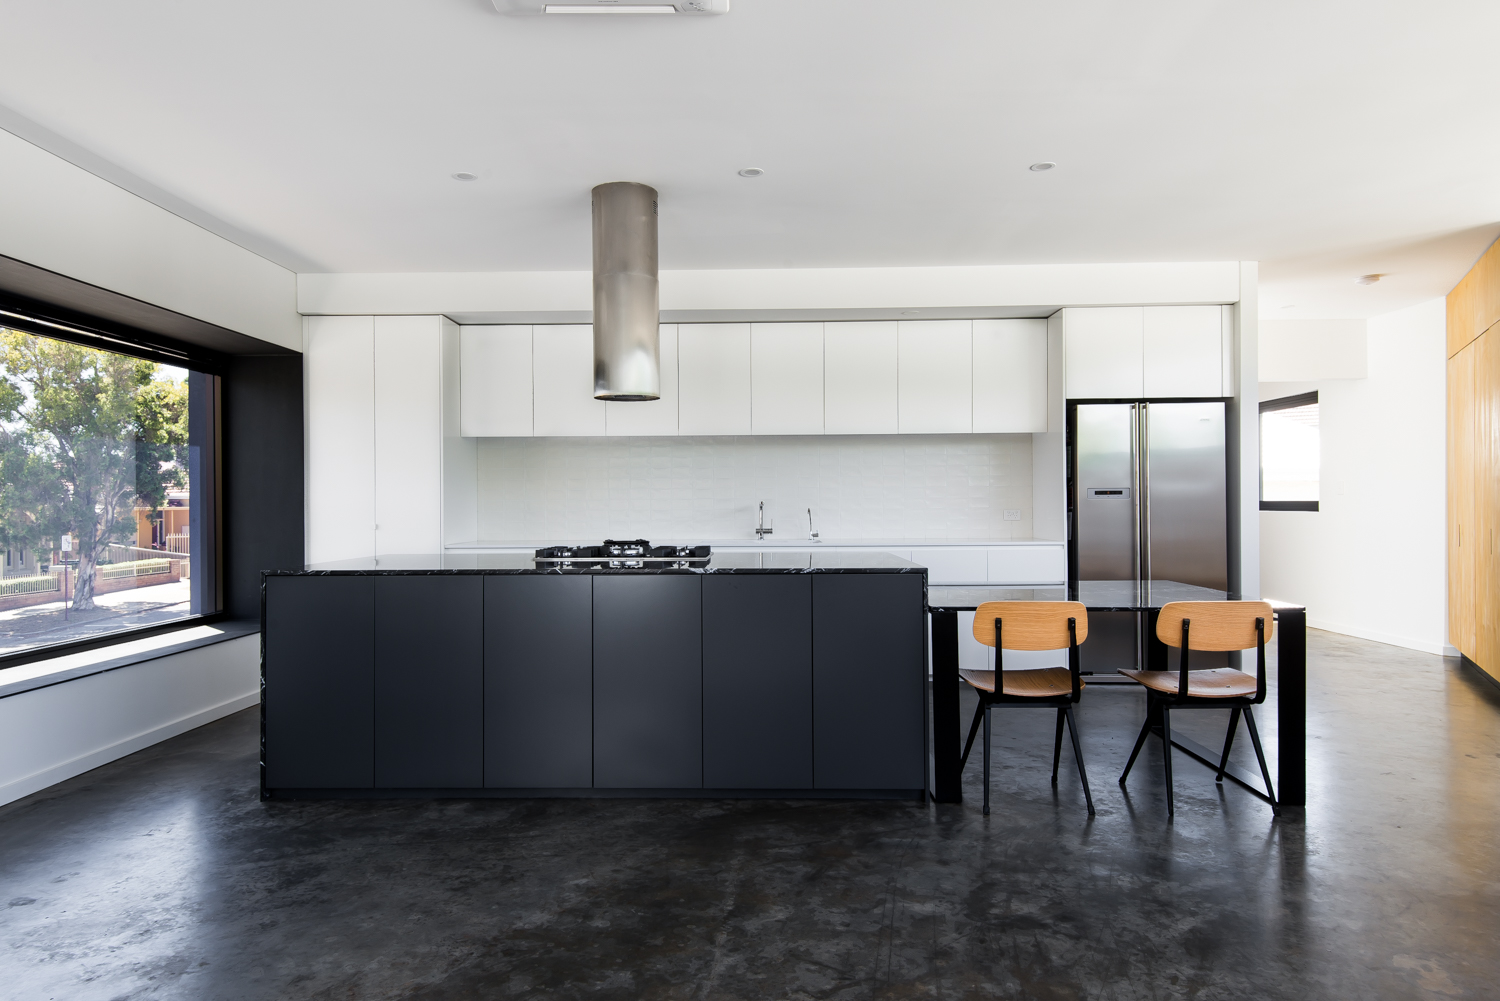 Triangle House by Robeson Architects - Kitchen